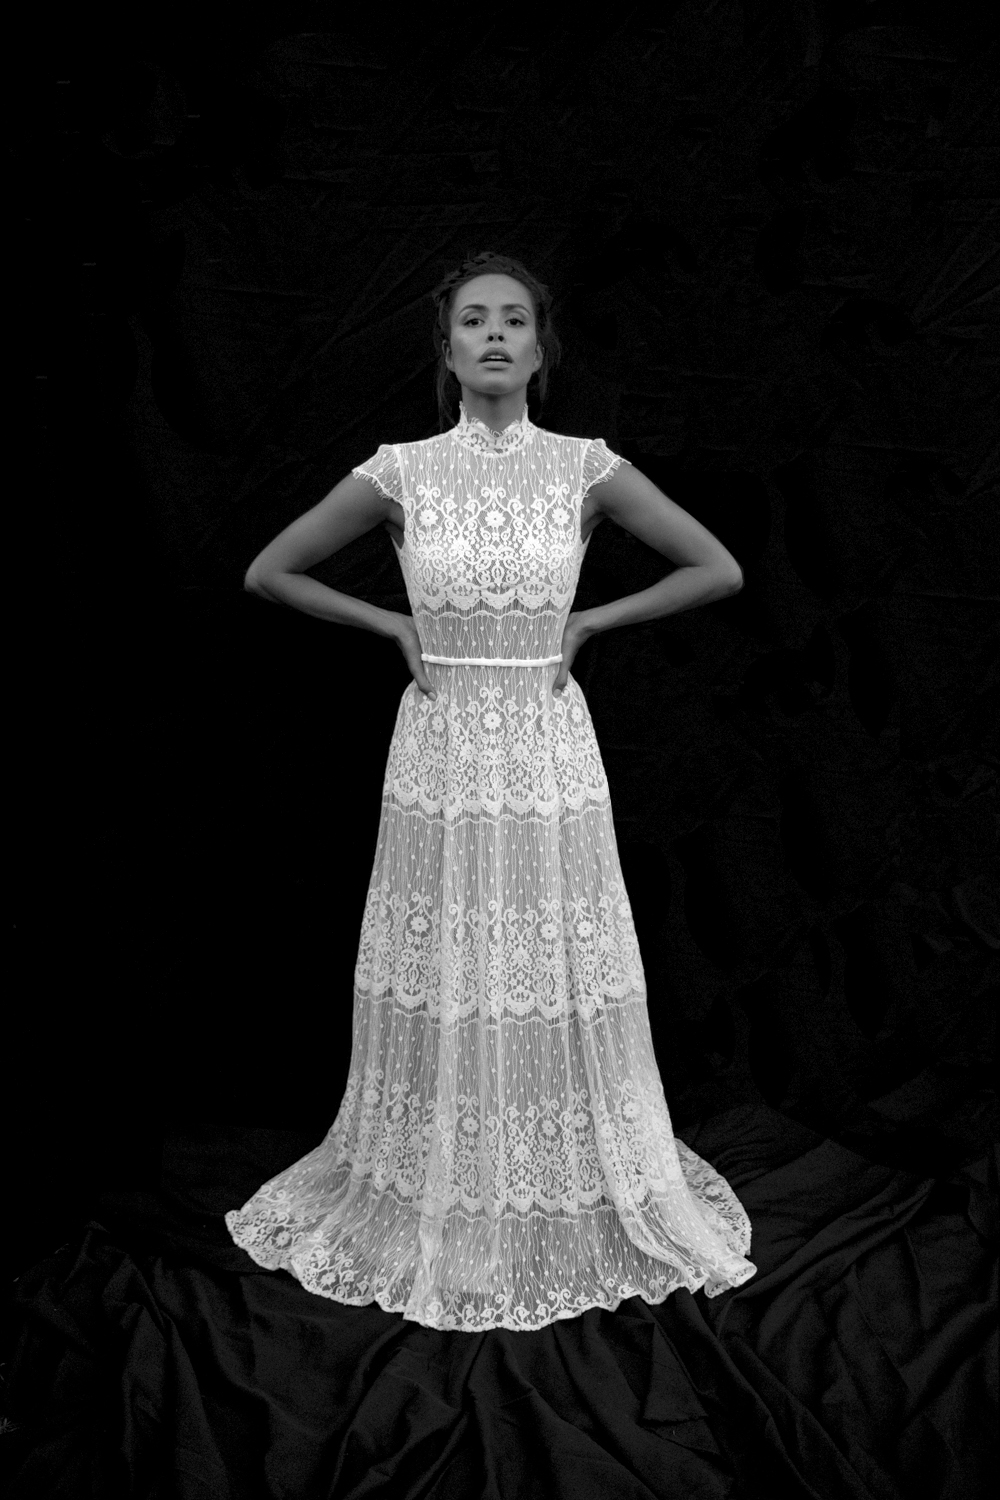 MAGDALENA - High neck, open back, lace gown. Regal influence with modern details. Because old traditions must be progressive.